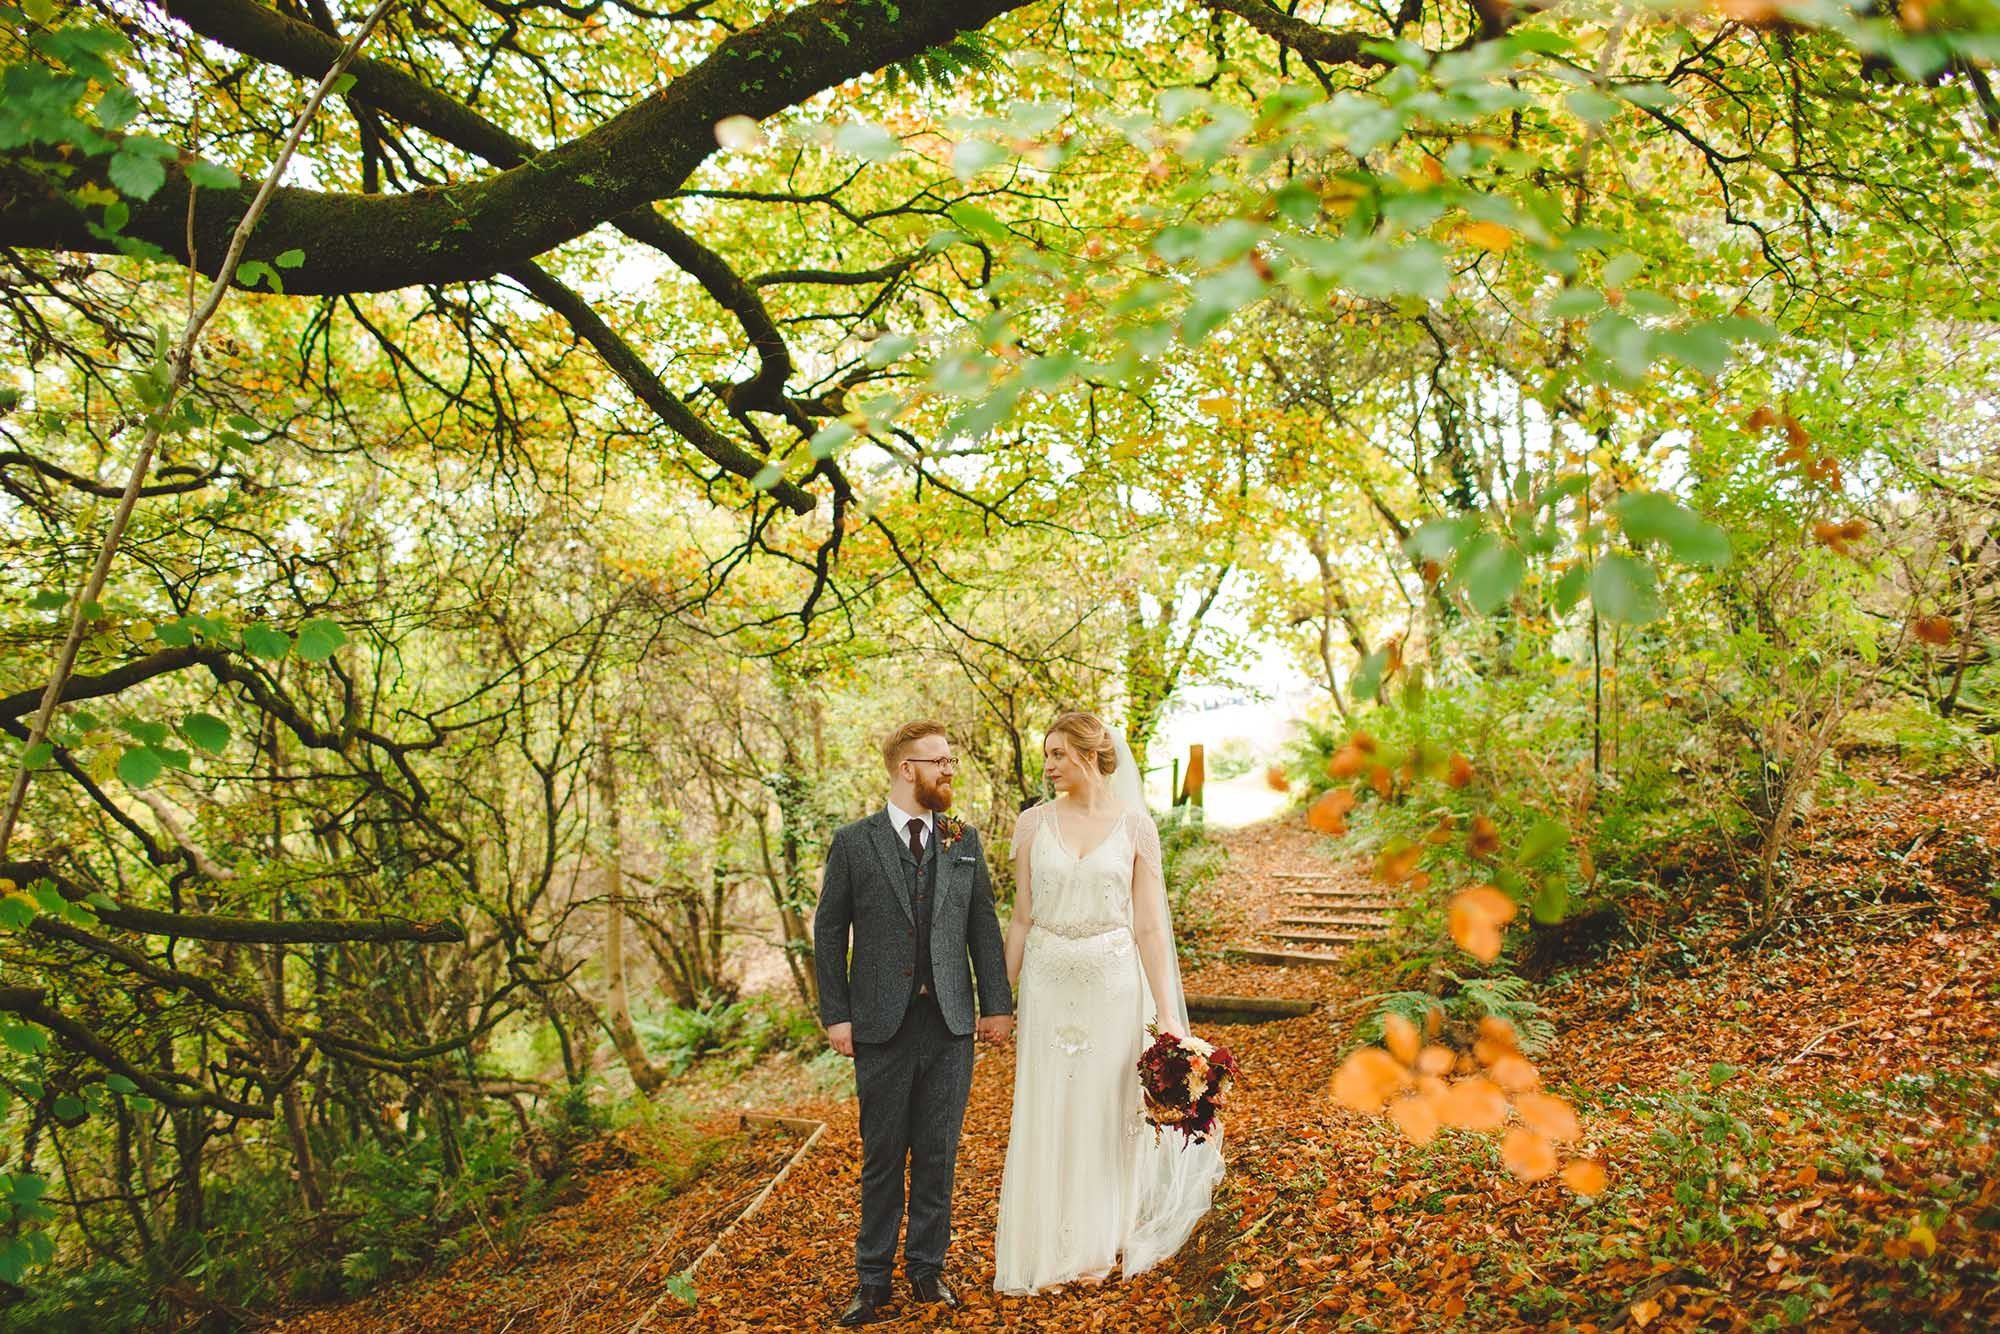 This is a photo of a bride and groom standing in a path in the woods in autum. This is a full length shot but the trees are about twice the height of the couple and form a canopy above their heads. There are loads of colourful autumn leaves on the ground but there are still green leaves on the trees. The bride is wearing a cream, full length, flowing dress with lace detail and lace sleeves she is wearing a veil. She has dark blonde here which she is wearing in a loose updo. The groom is wearing a grey, tweed three-piece suit with a white shirt and a brown tie. The groom has glasses and a full beard and he has red hair. In her left hand the bride is holding a bouquet with autumn coloured flowers; purple red and yellow. The bride is on the right of the shot and the groom is on the left. They are facing the camera but their heads are turned towards each other. There are some steps leading upwards out of the woods in the background to the right of the bride.